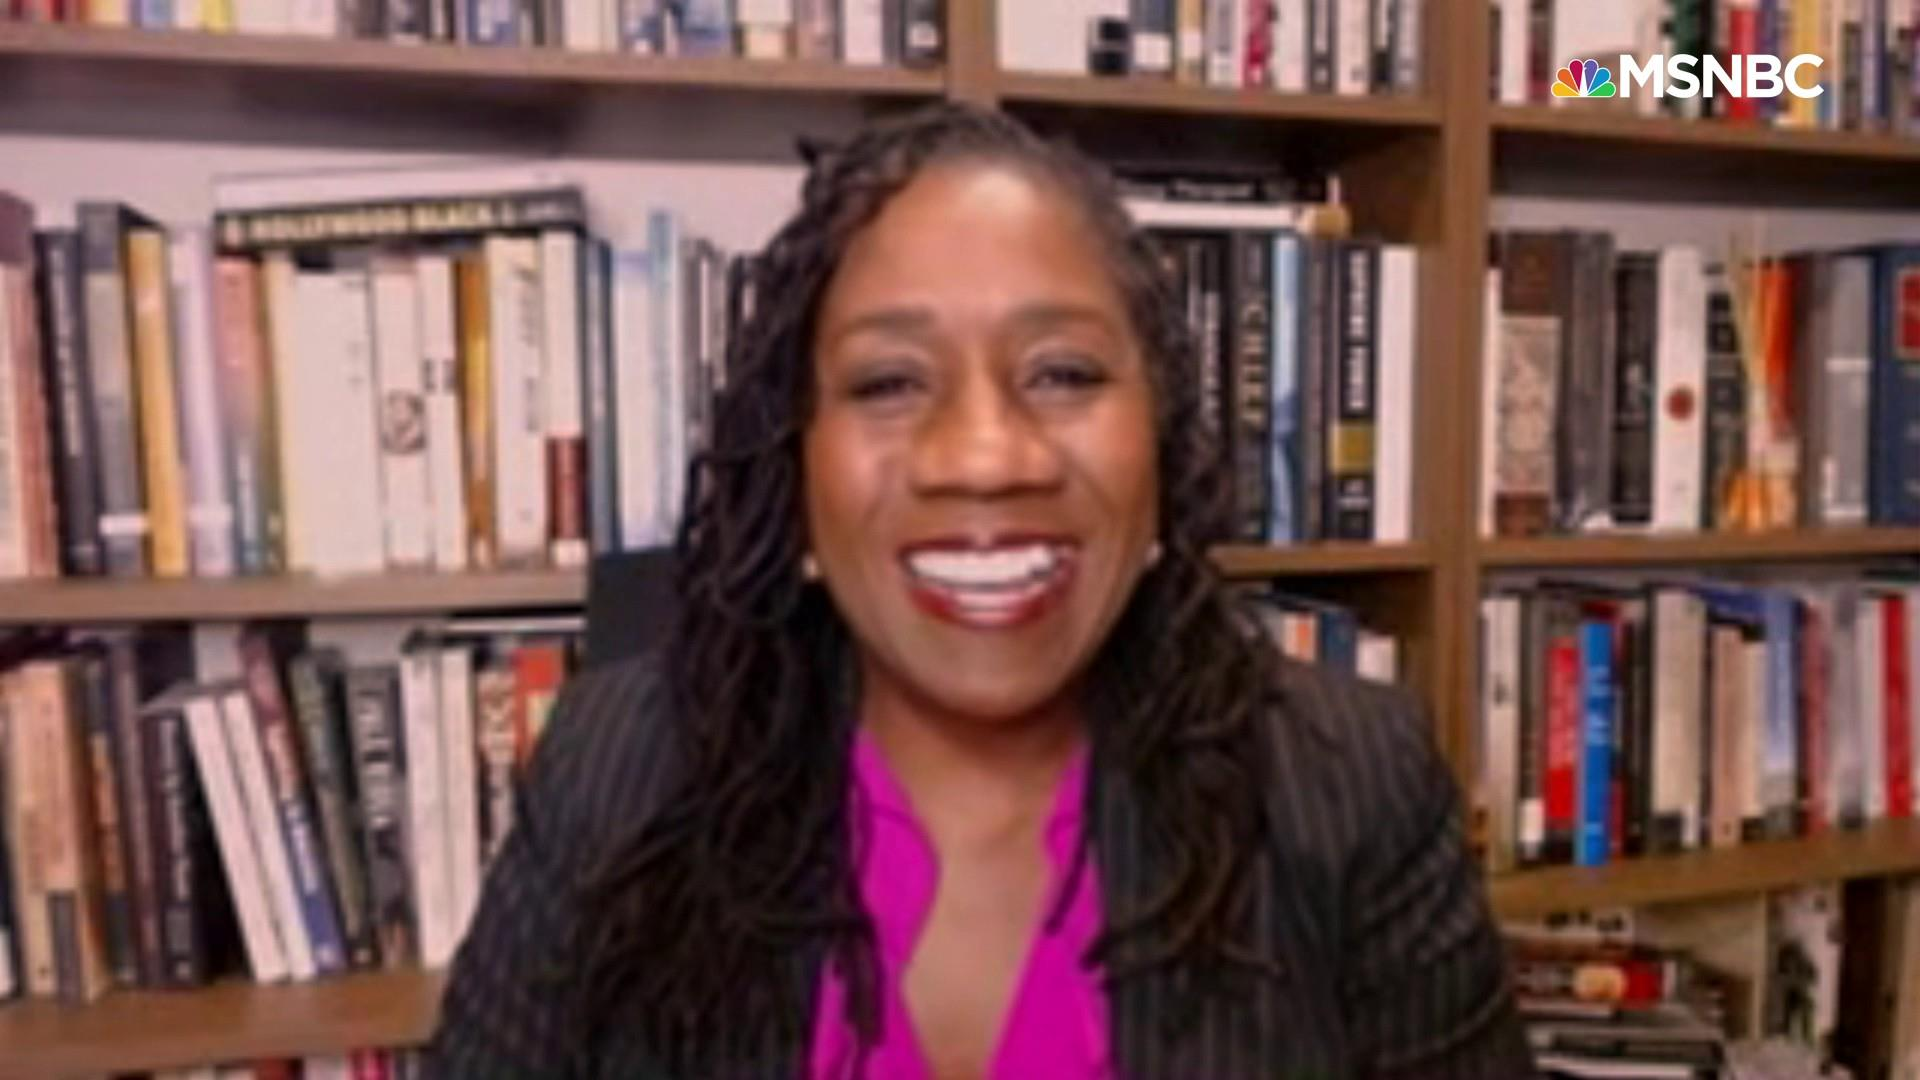 'It be mighty to have your name on immediate lists': Sherrilyn Ifill acknowledges SCOTUS rumors